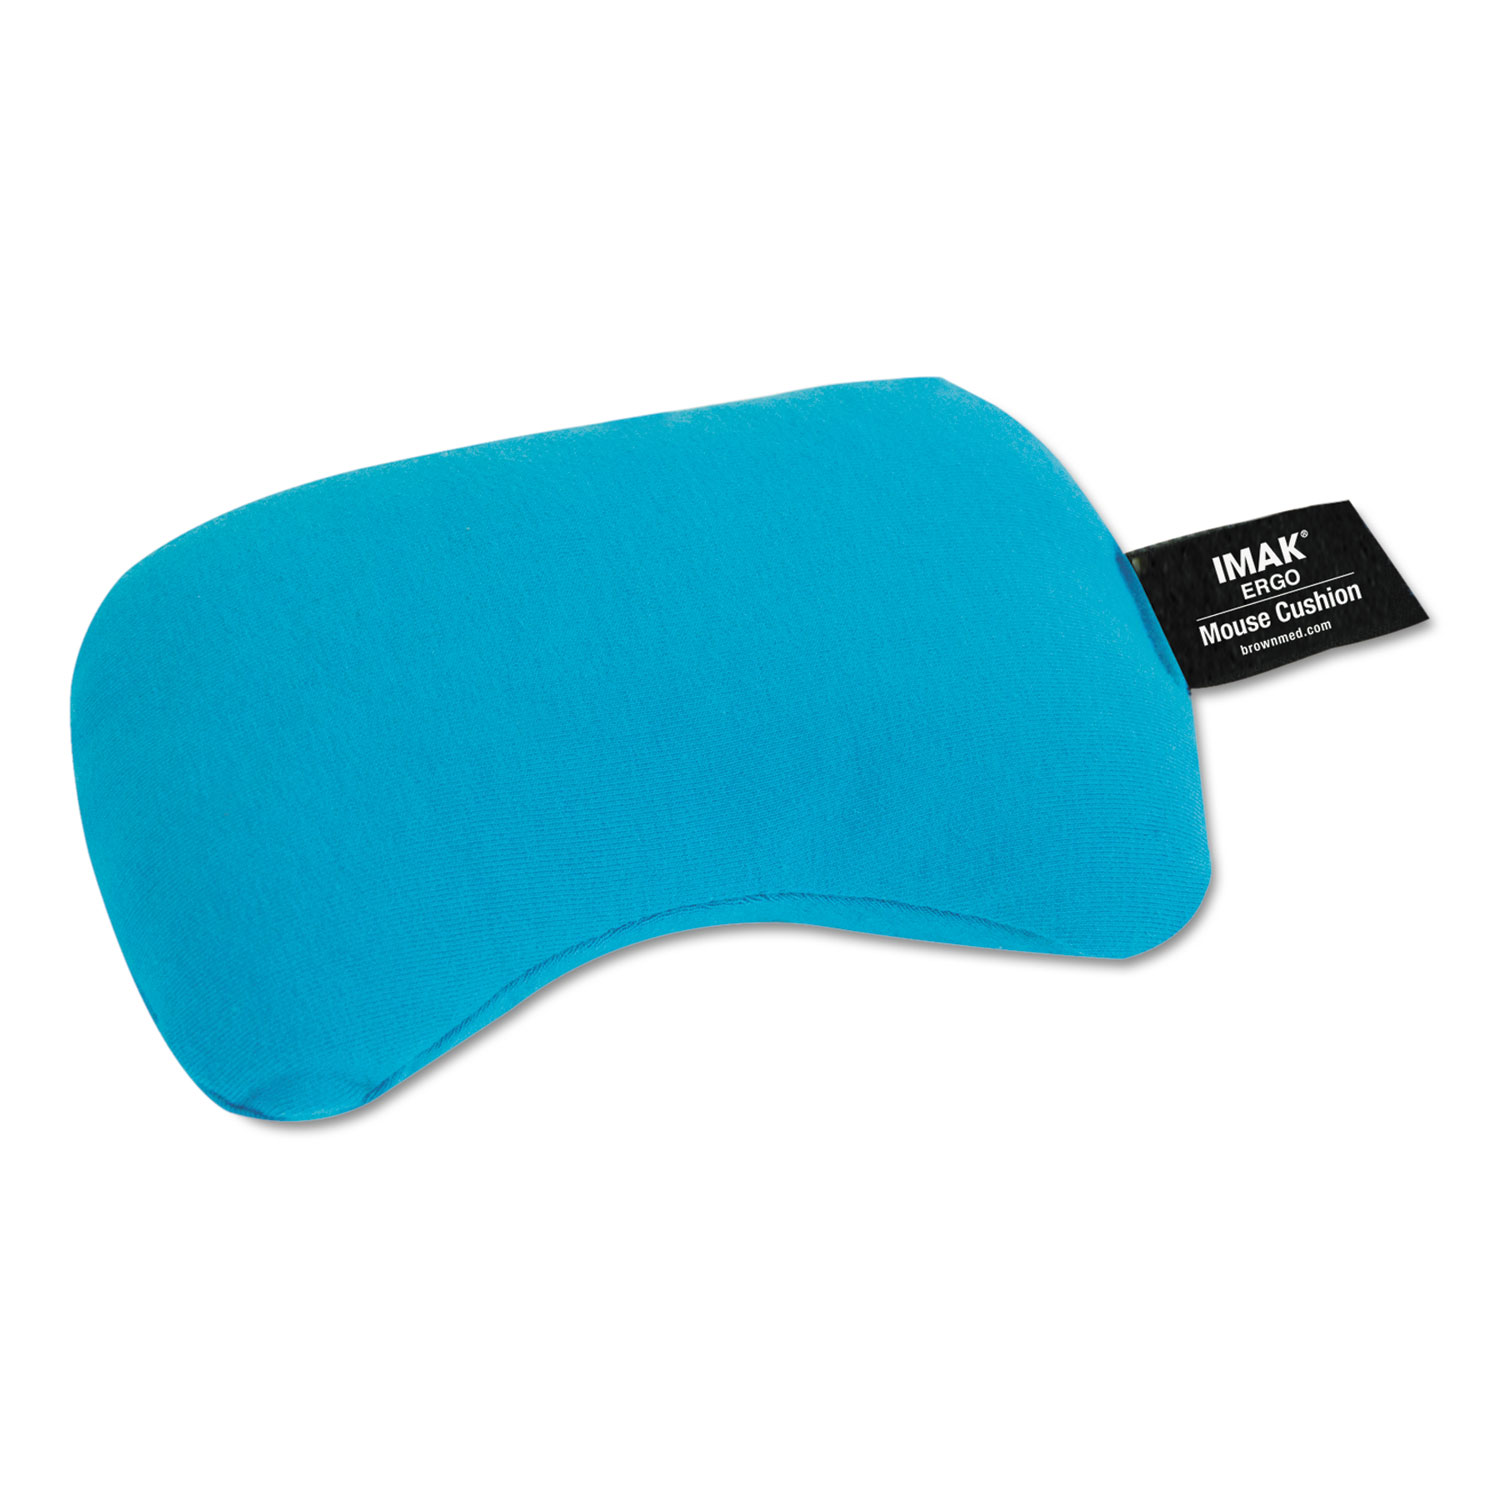 Le Petit Mouse Wrist Cushion, Teal